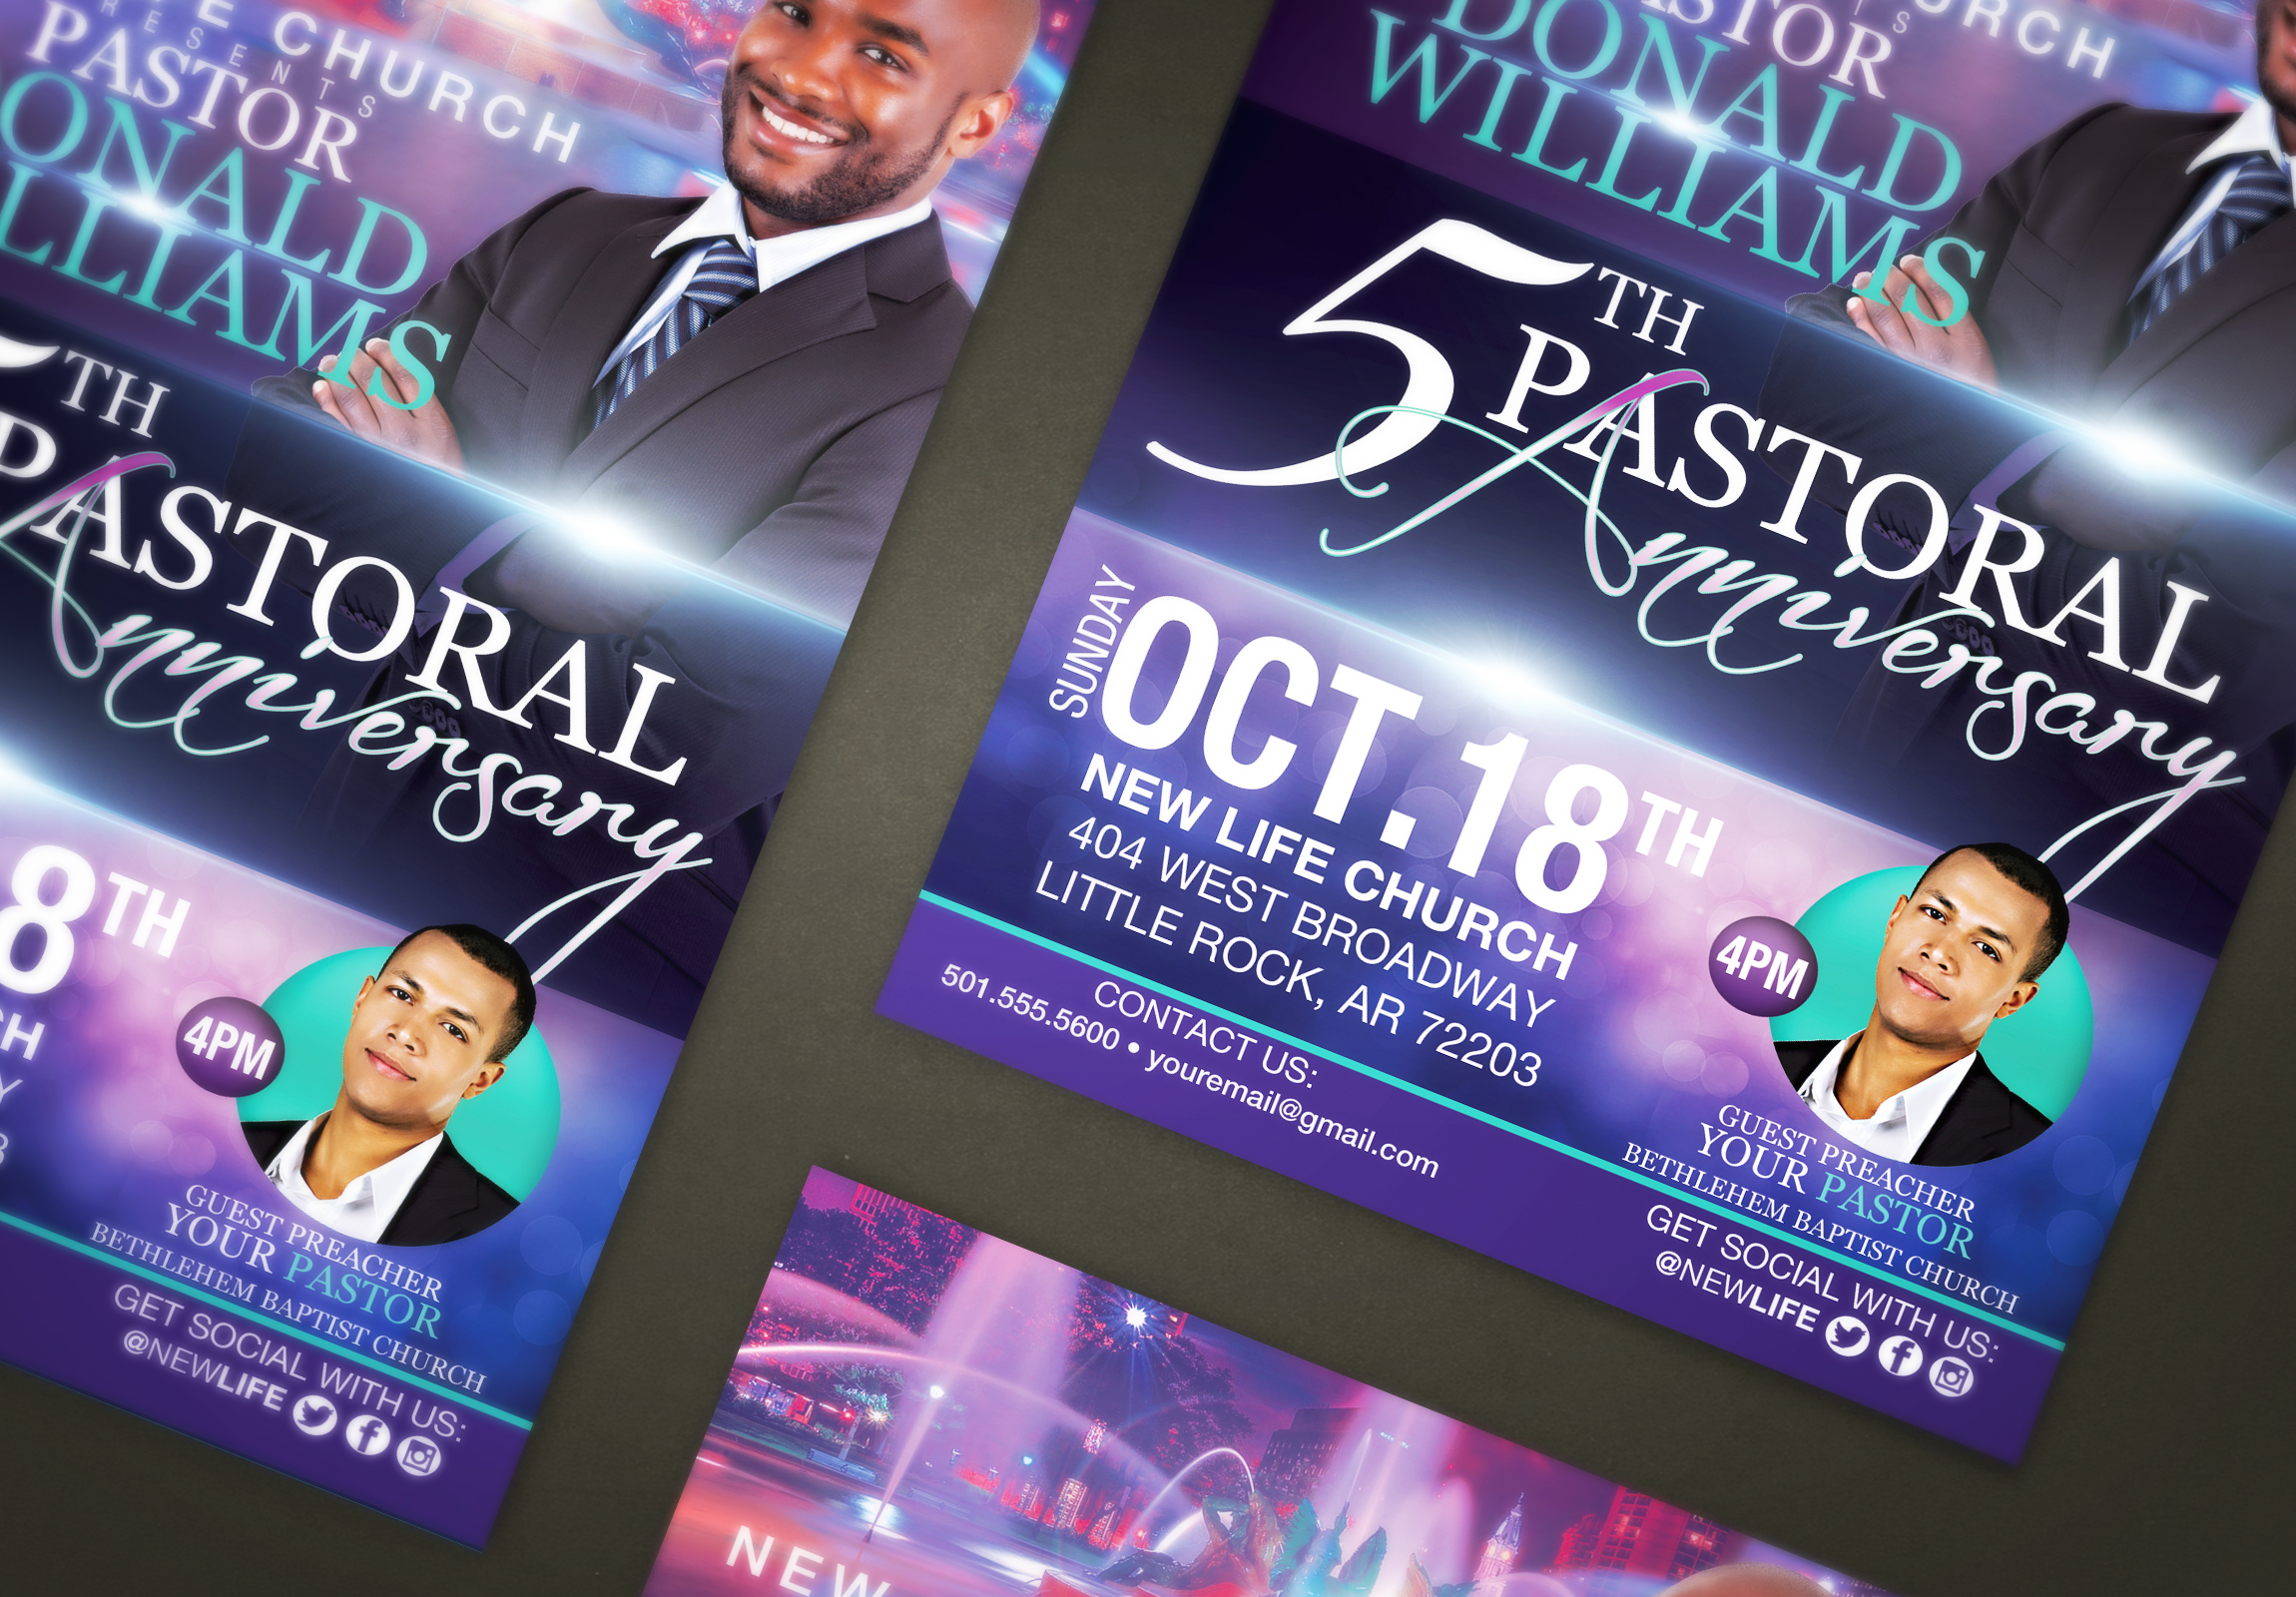 Pastor Anniversary Flyer Template | FlyerThemes